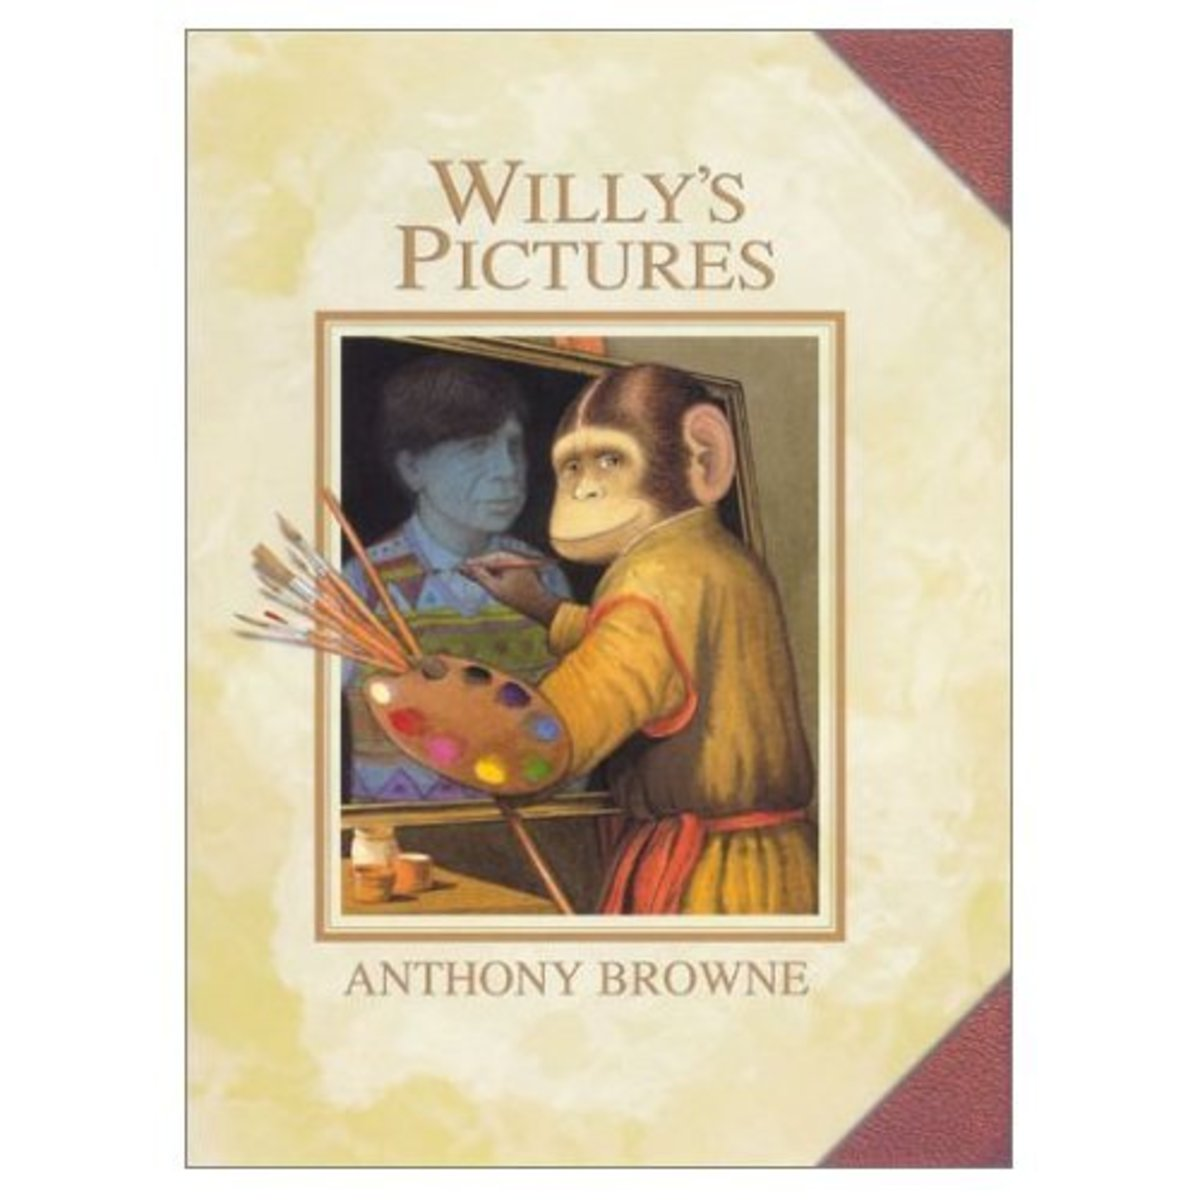 Willie's Pictures will introduce youngsters to the topic of art history through a talented chimp named Willie.